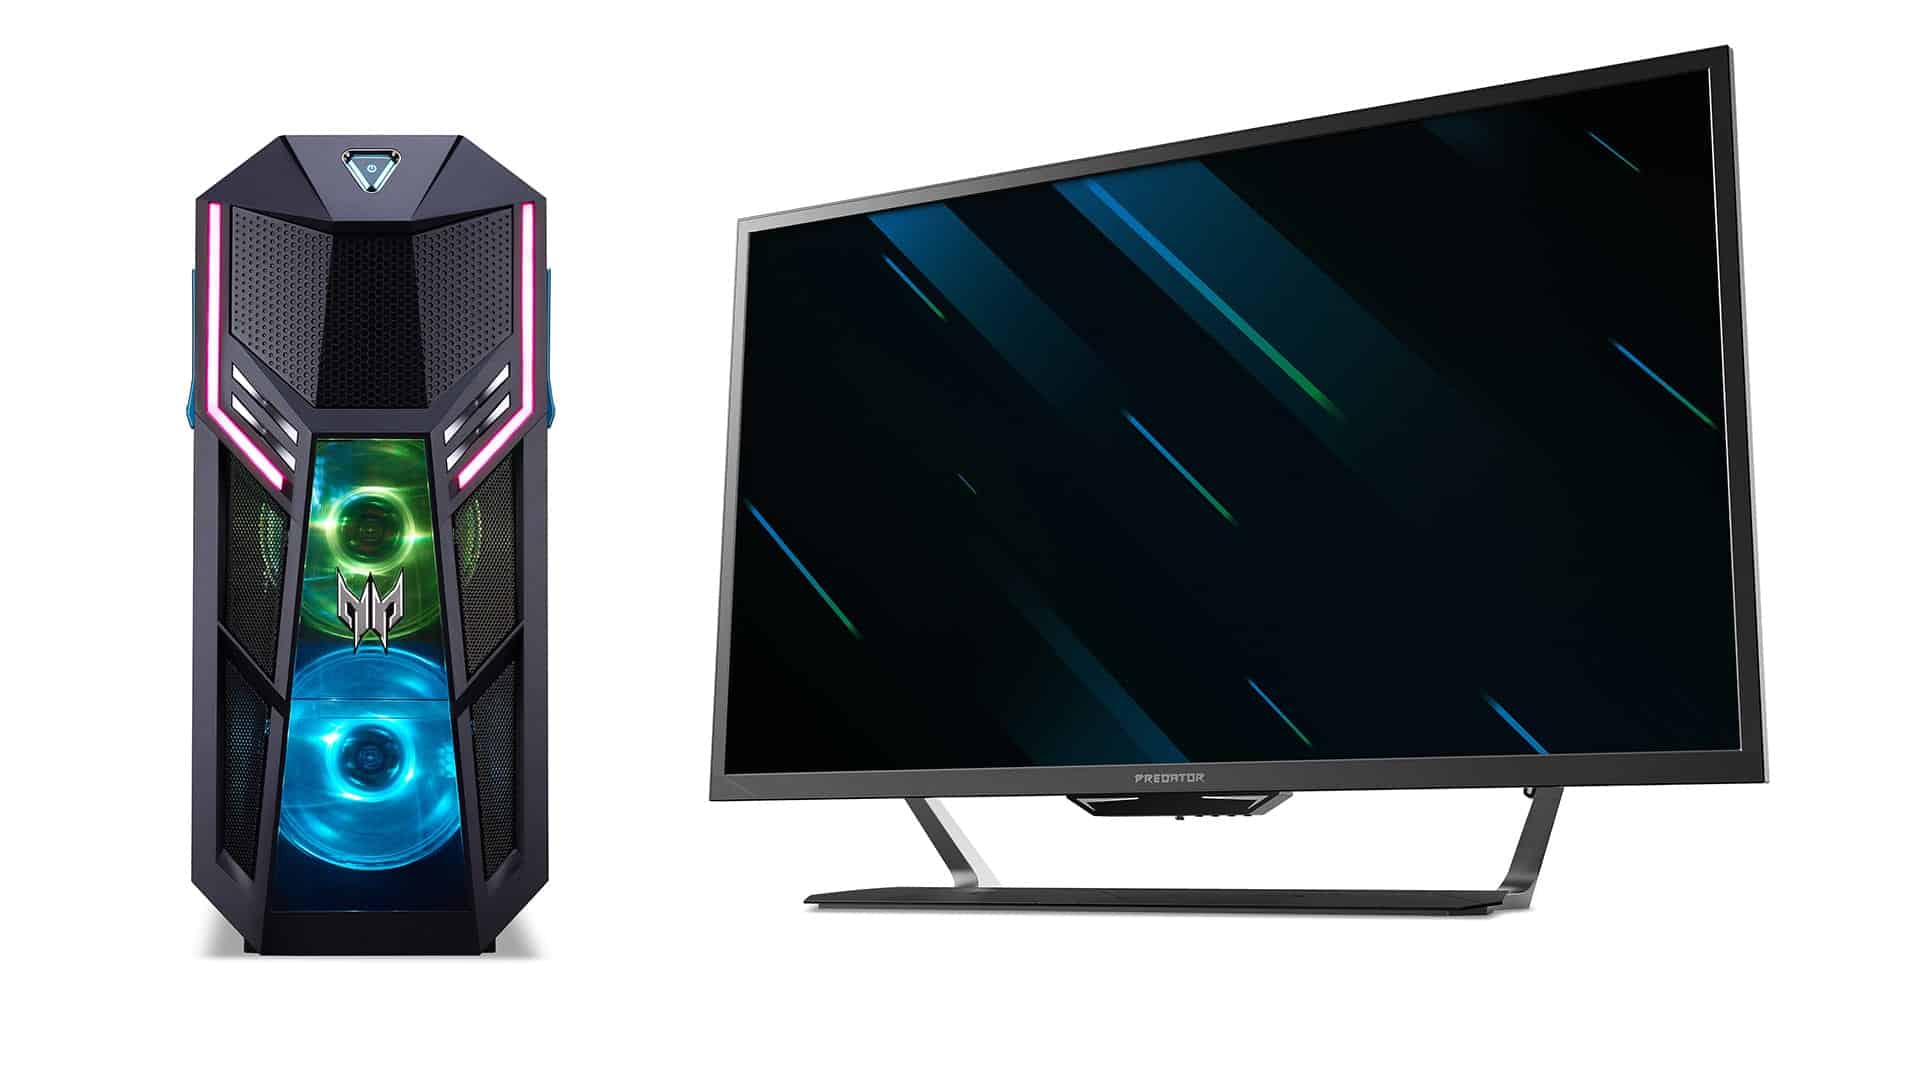 Acer's Predator Is Huge And Bright – It's A 43-Inch 4K Display And Has Generous Port Selection